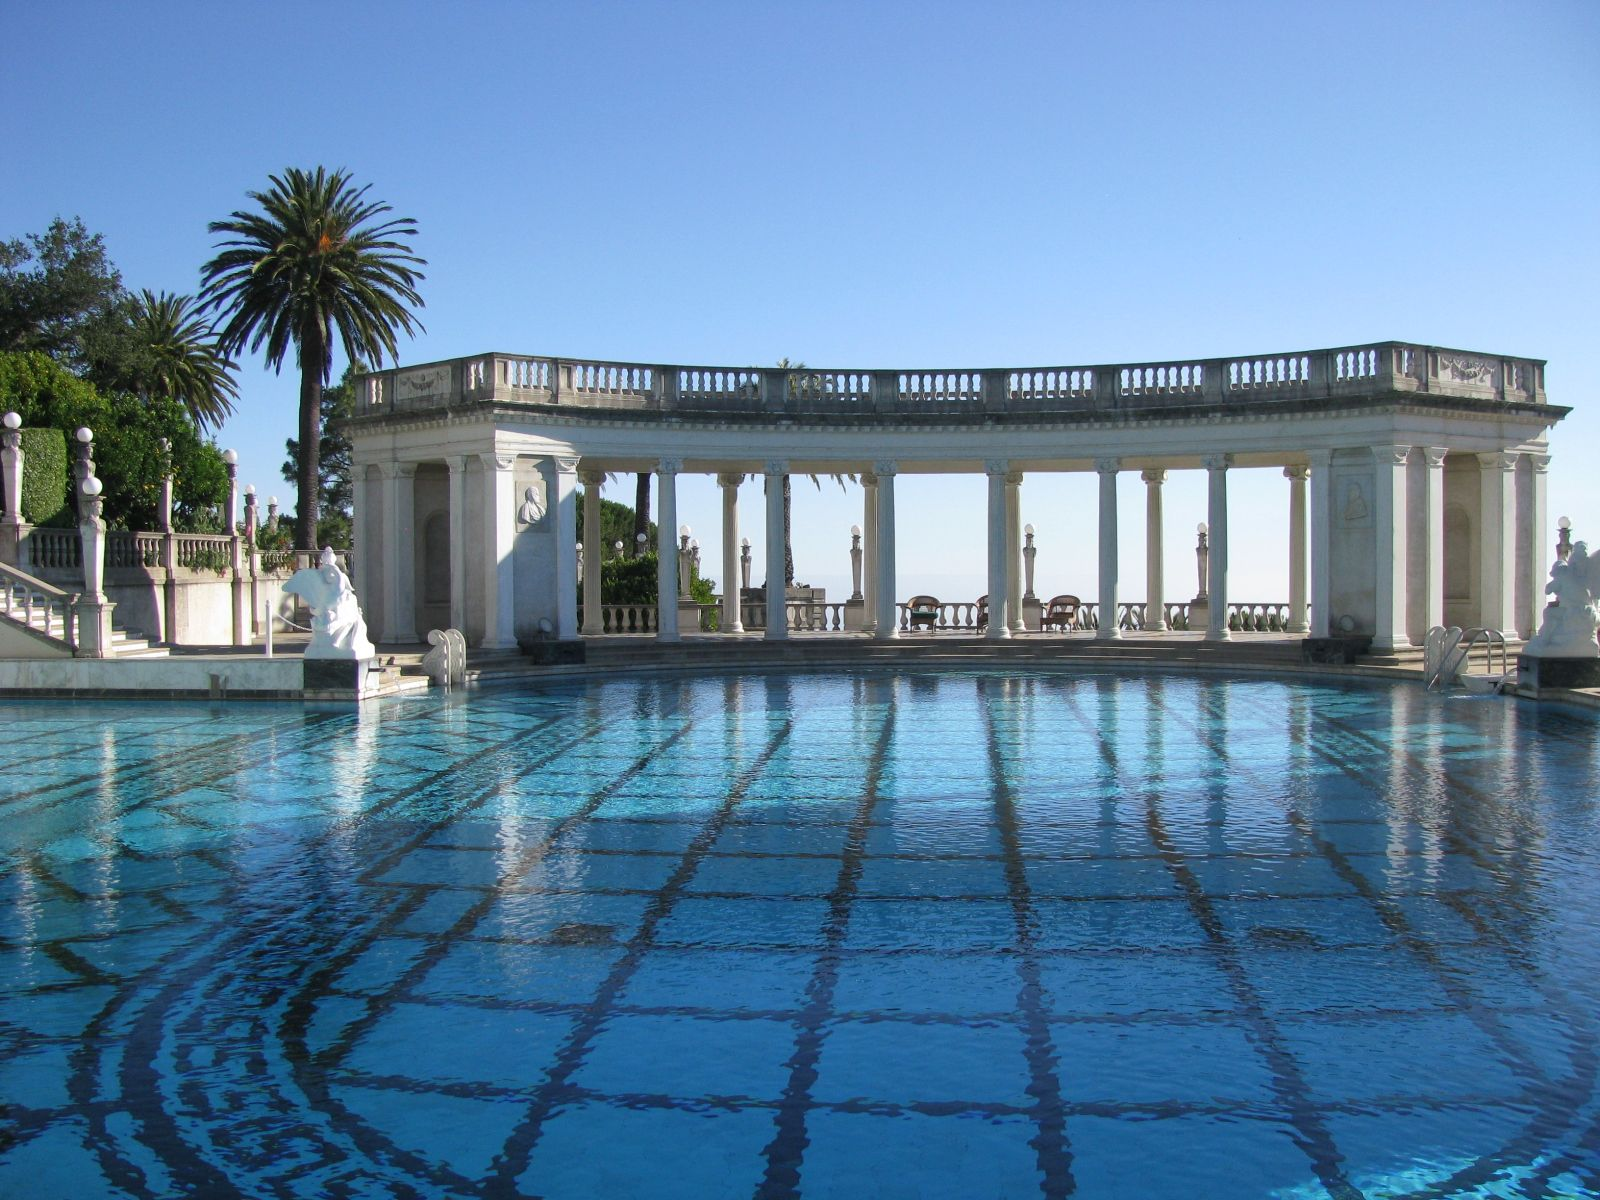 Hearst castle san simeon california been there pinterest for San sineon